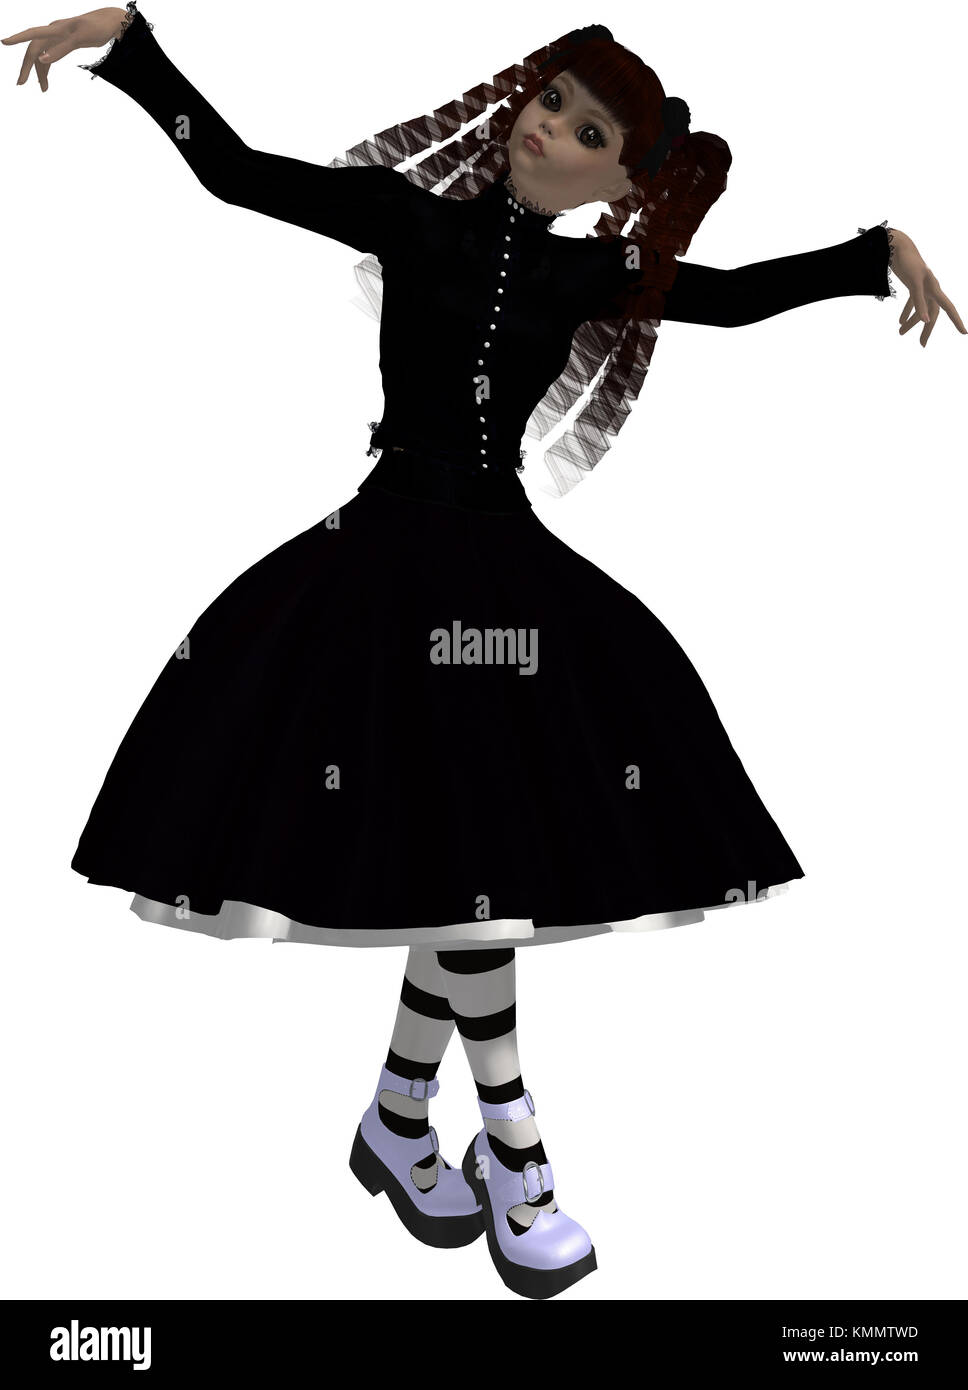 Goth girl in black dress with arms spread Stock Photo